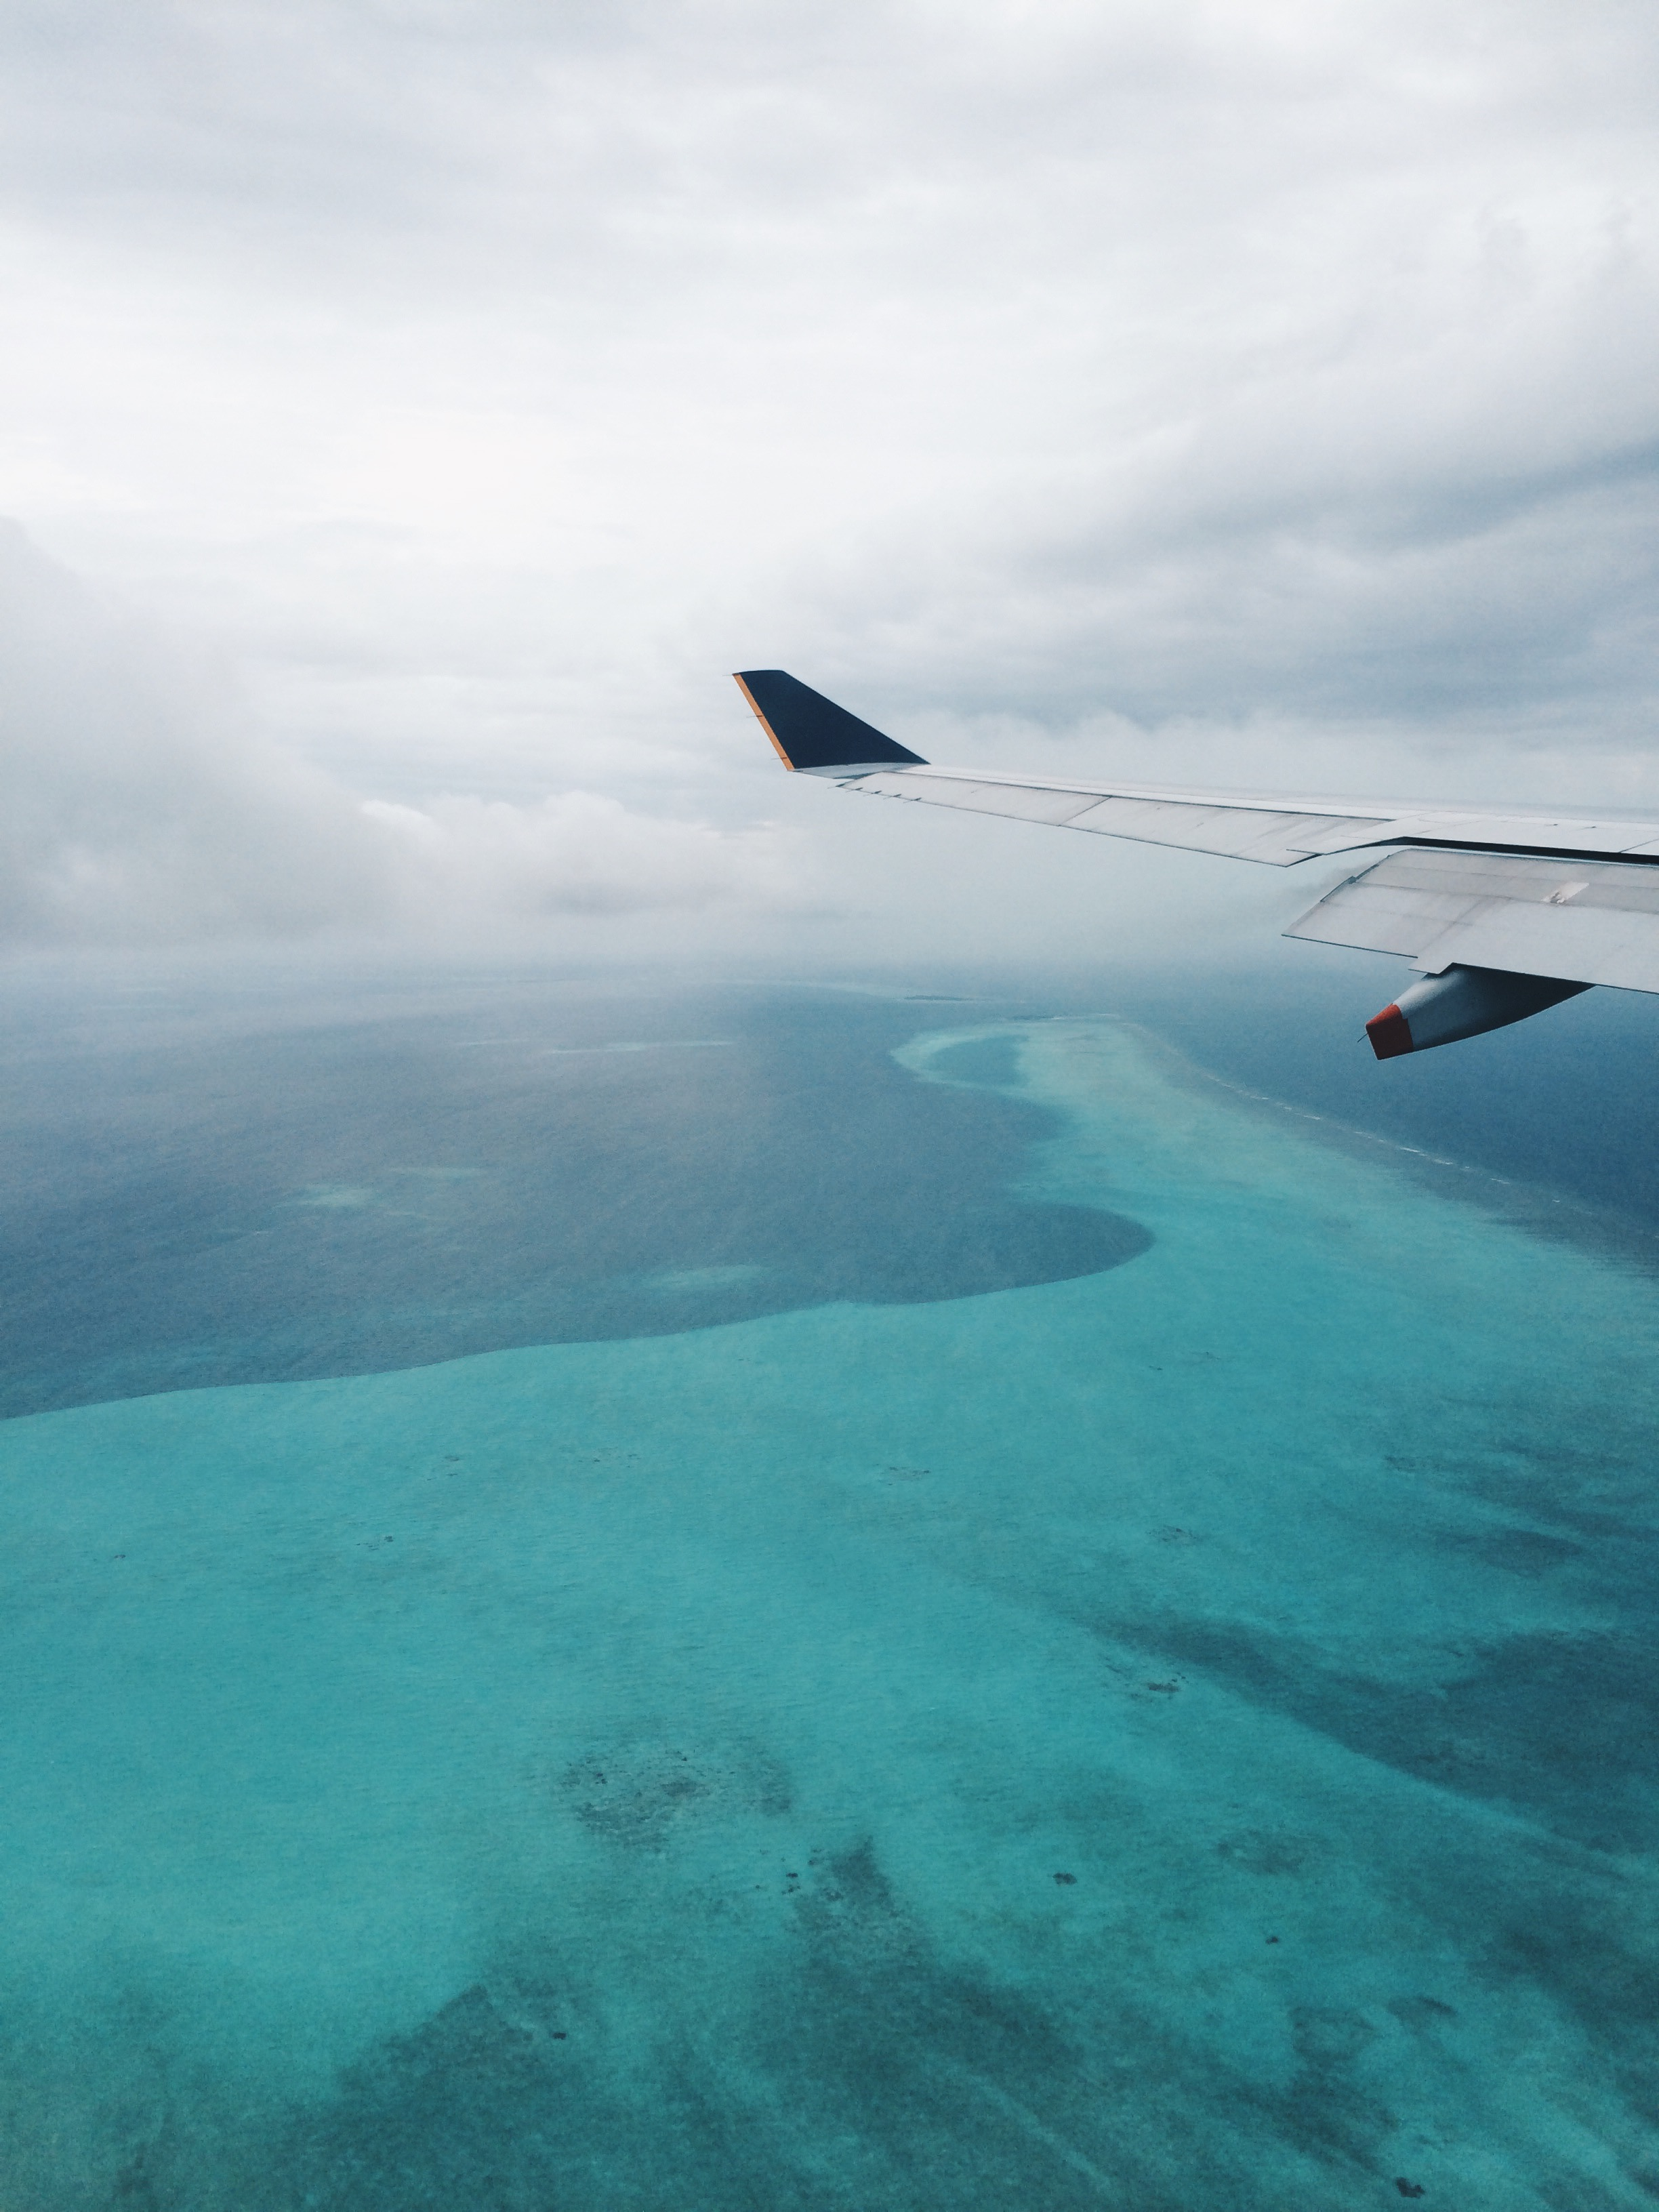 Flying into stunning turquoise waters